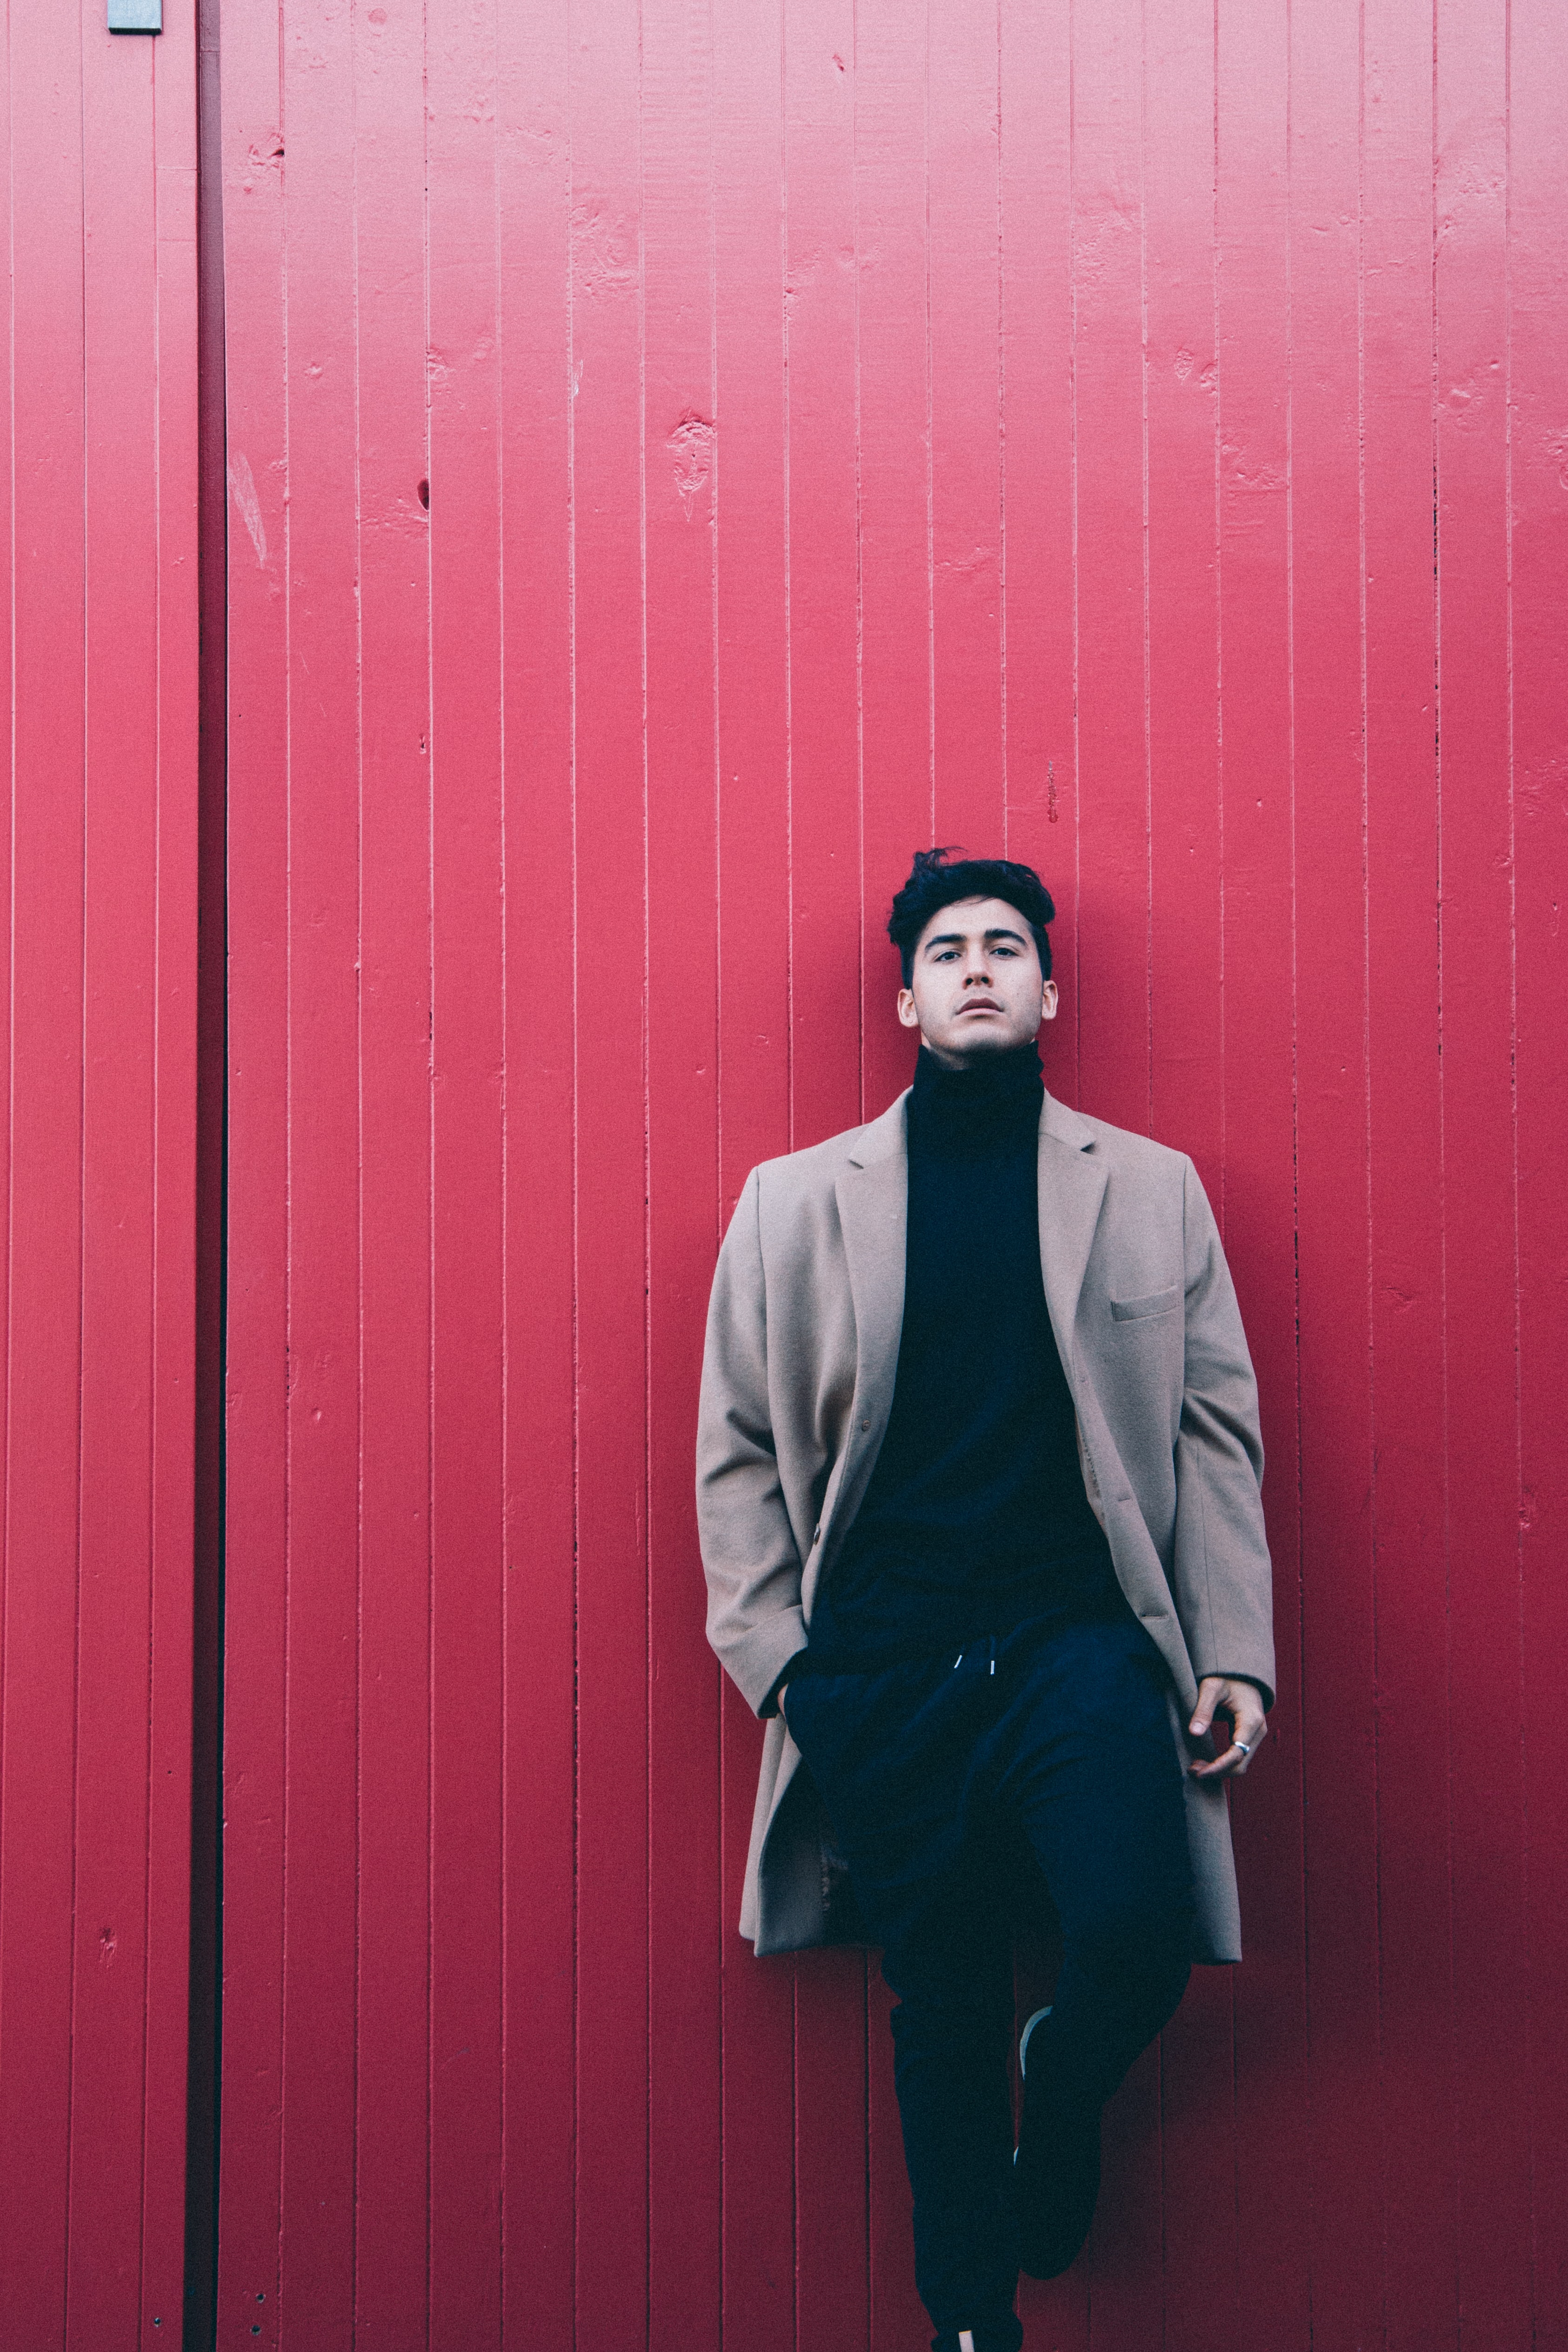 man wearing coat leaning on red wall